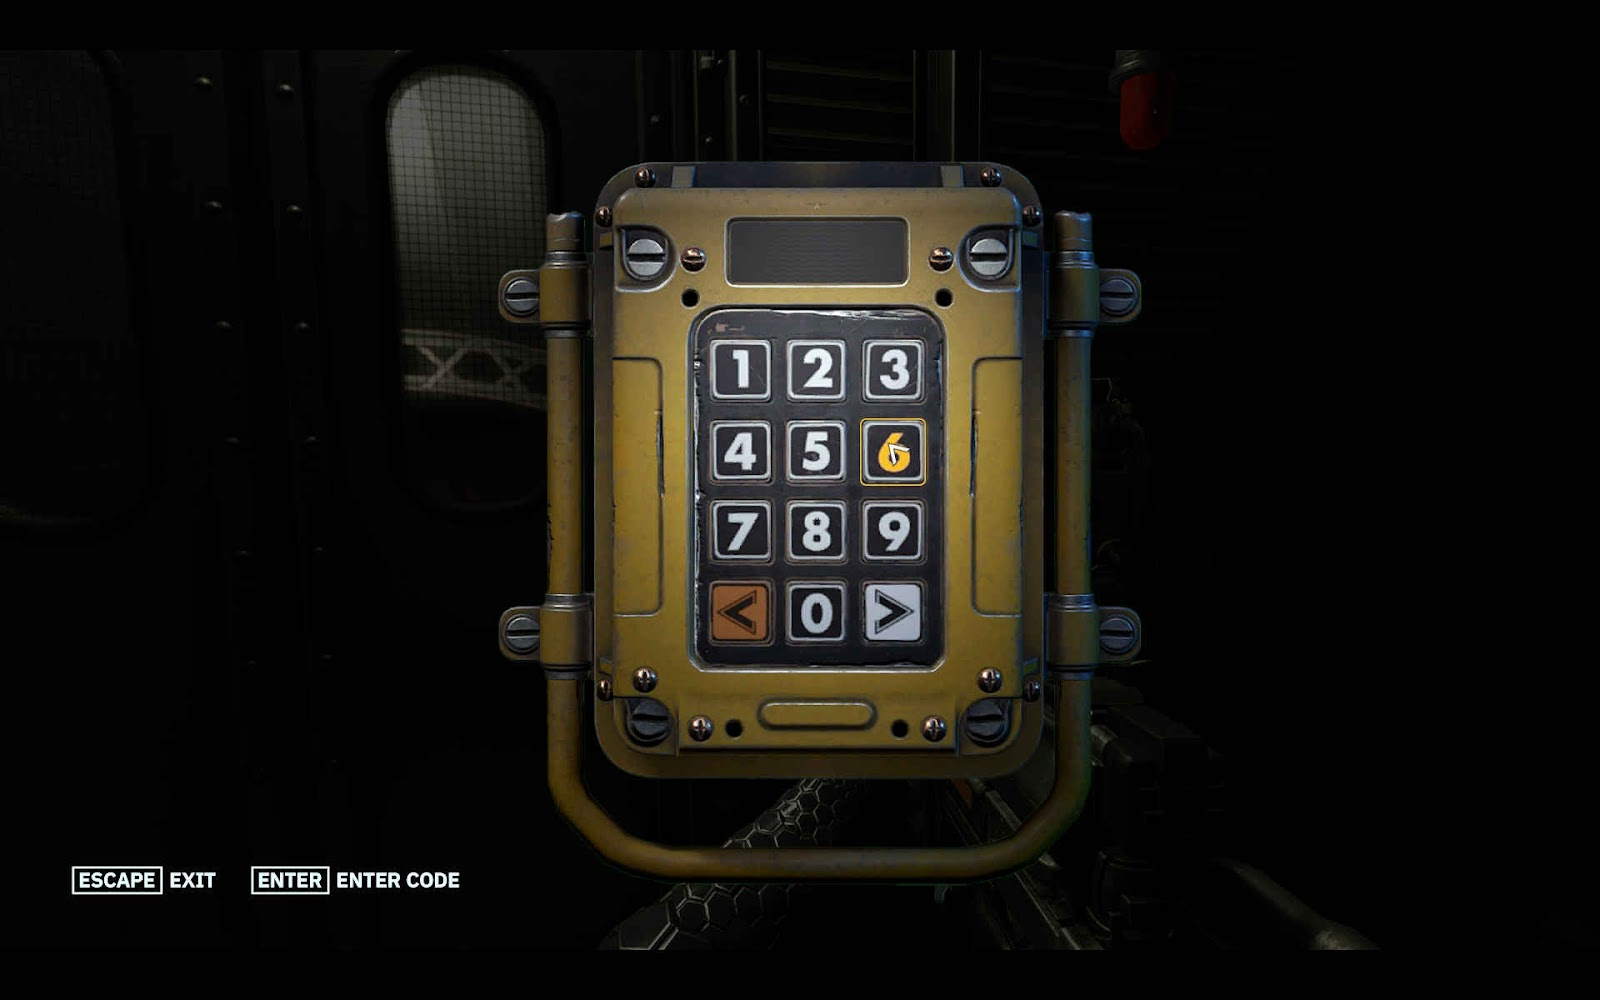 A numerical lock pad awaiting the right code with Escape and Enter buttons at the bottom